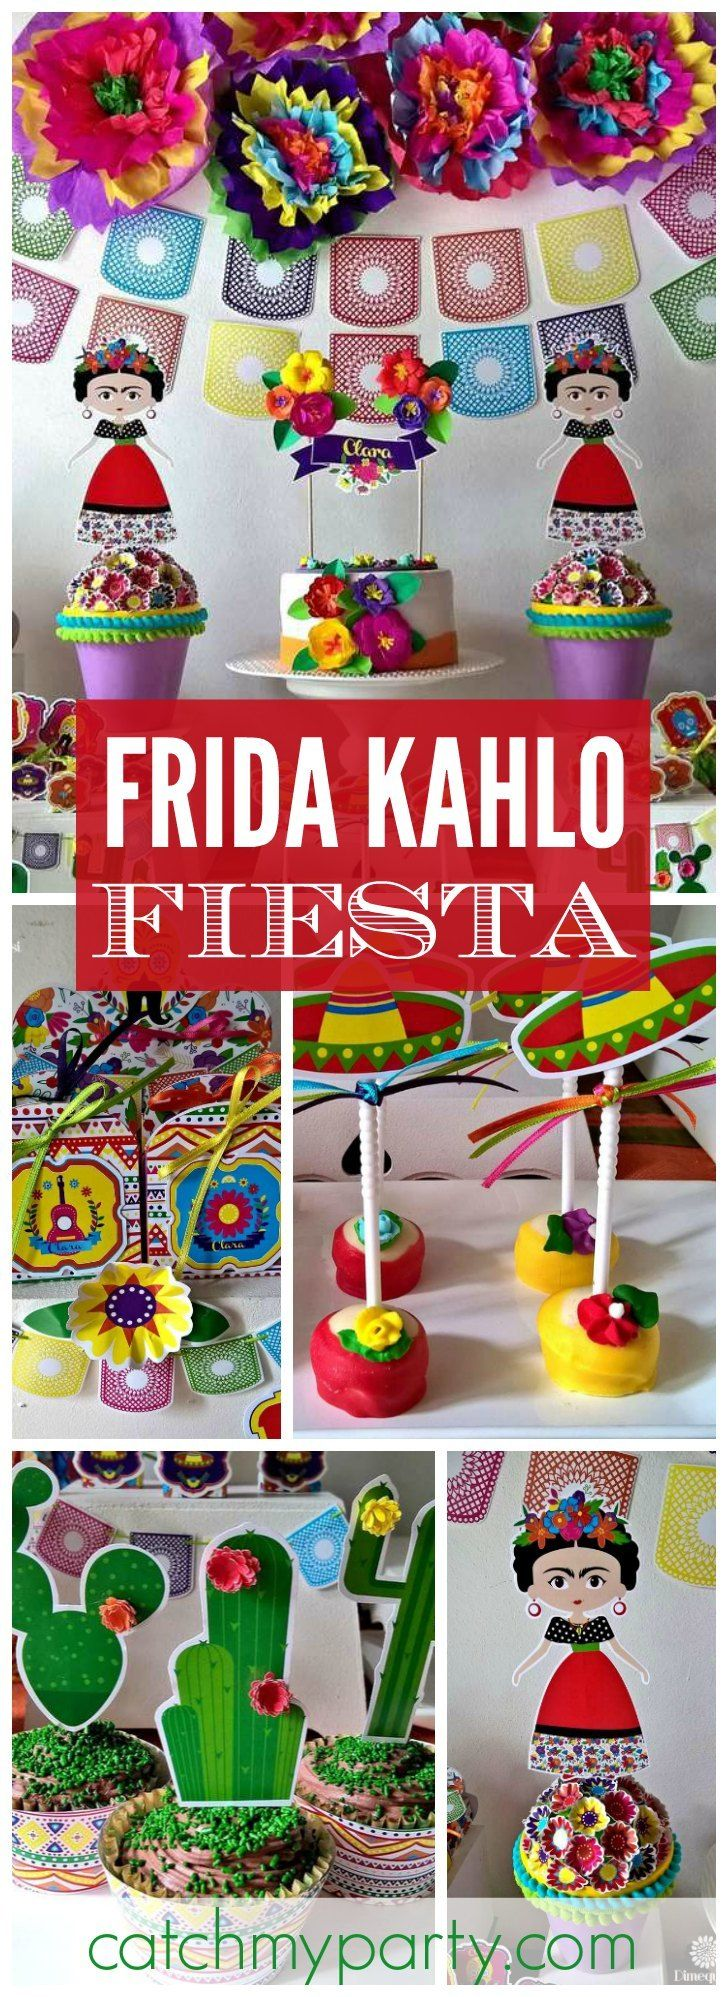 This colorful Mexican fiesta features Frida Kahlo! See more party ideas at CatchMyParty.com!